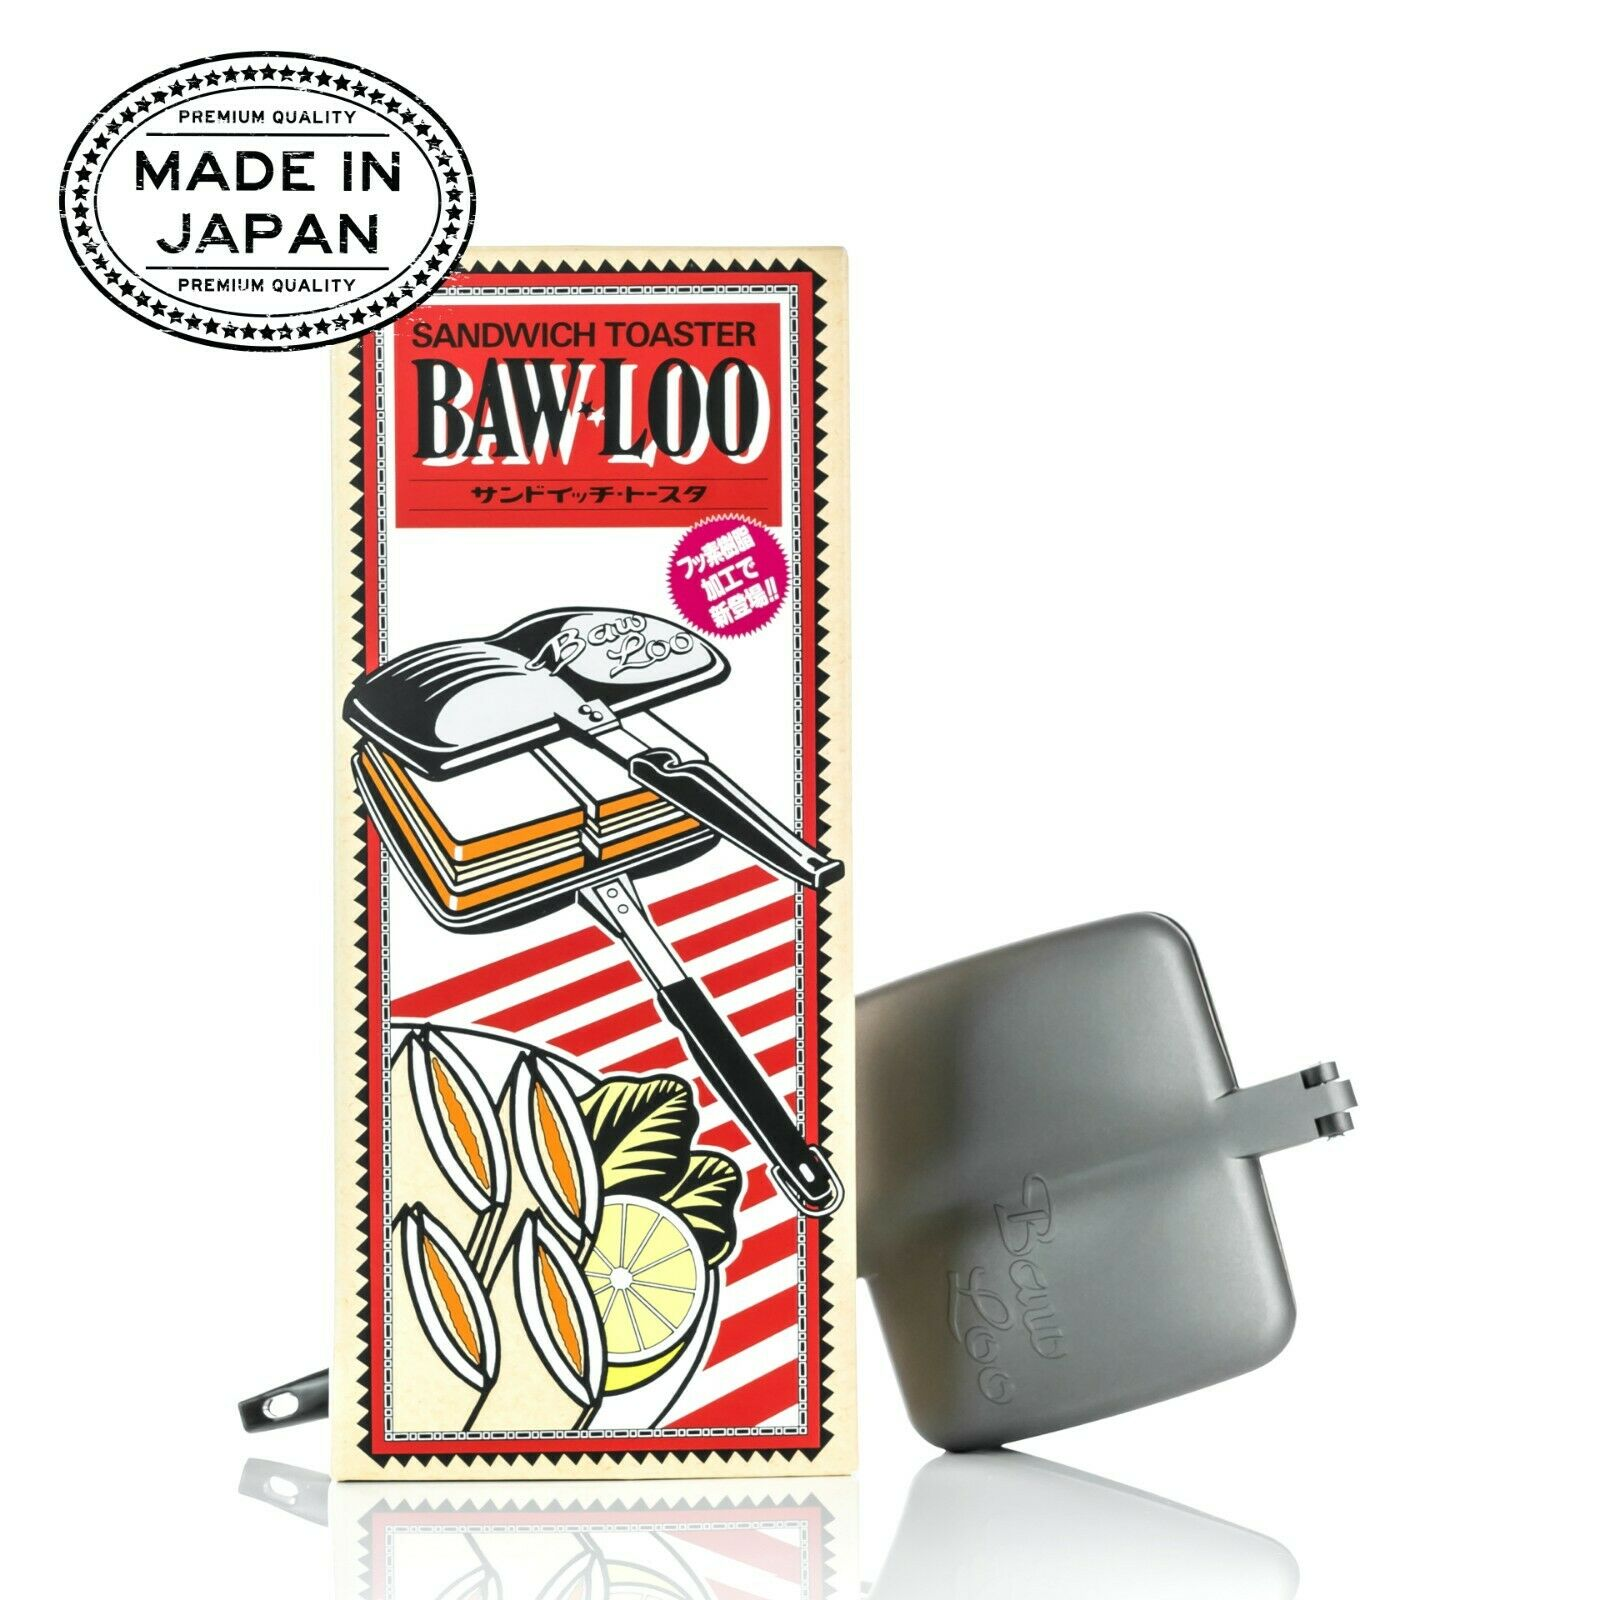 Bawloo Stove Top Panini Press & HOT Sandwich Maker-Made in Japan, fait pour durer